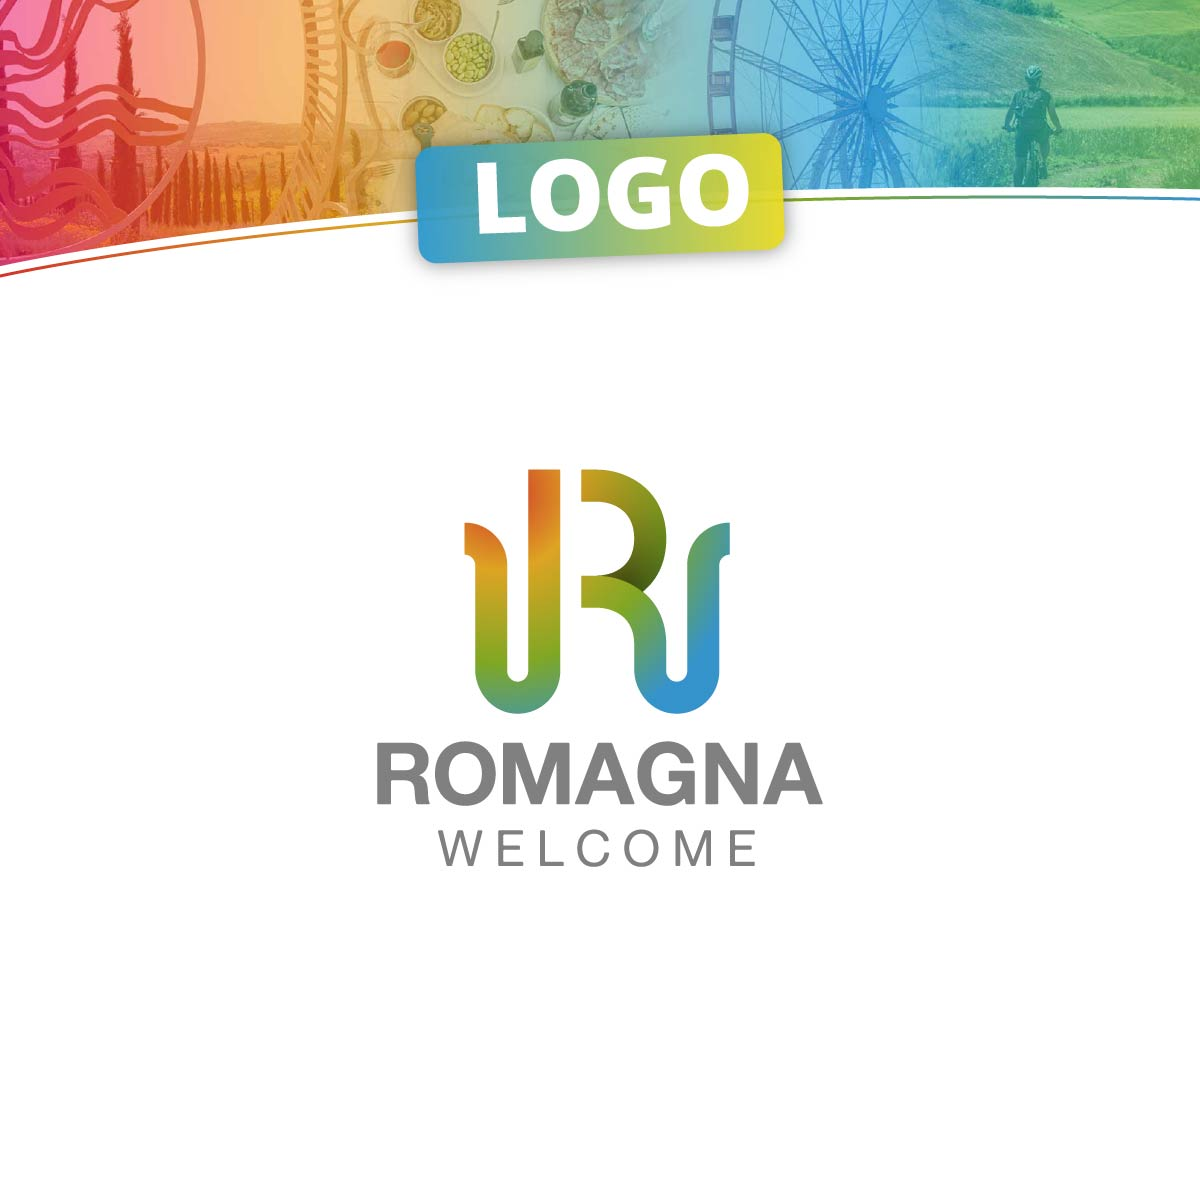 romagna_welcome-rimini_influencer_marketing_turismo_2019-brand-identity-3